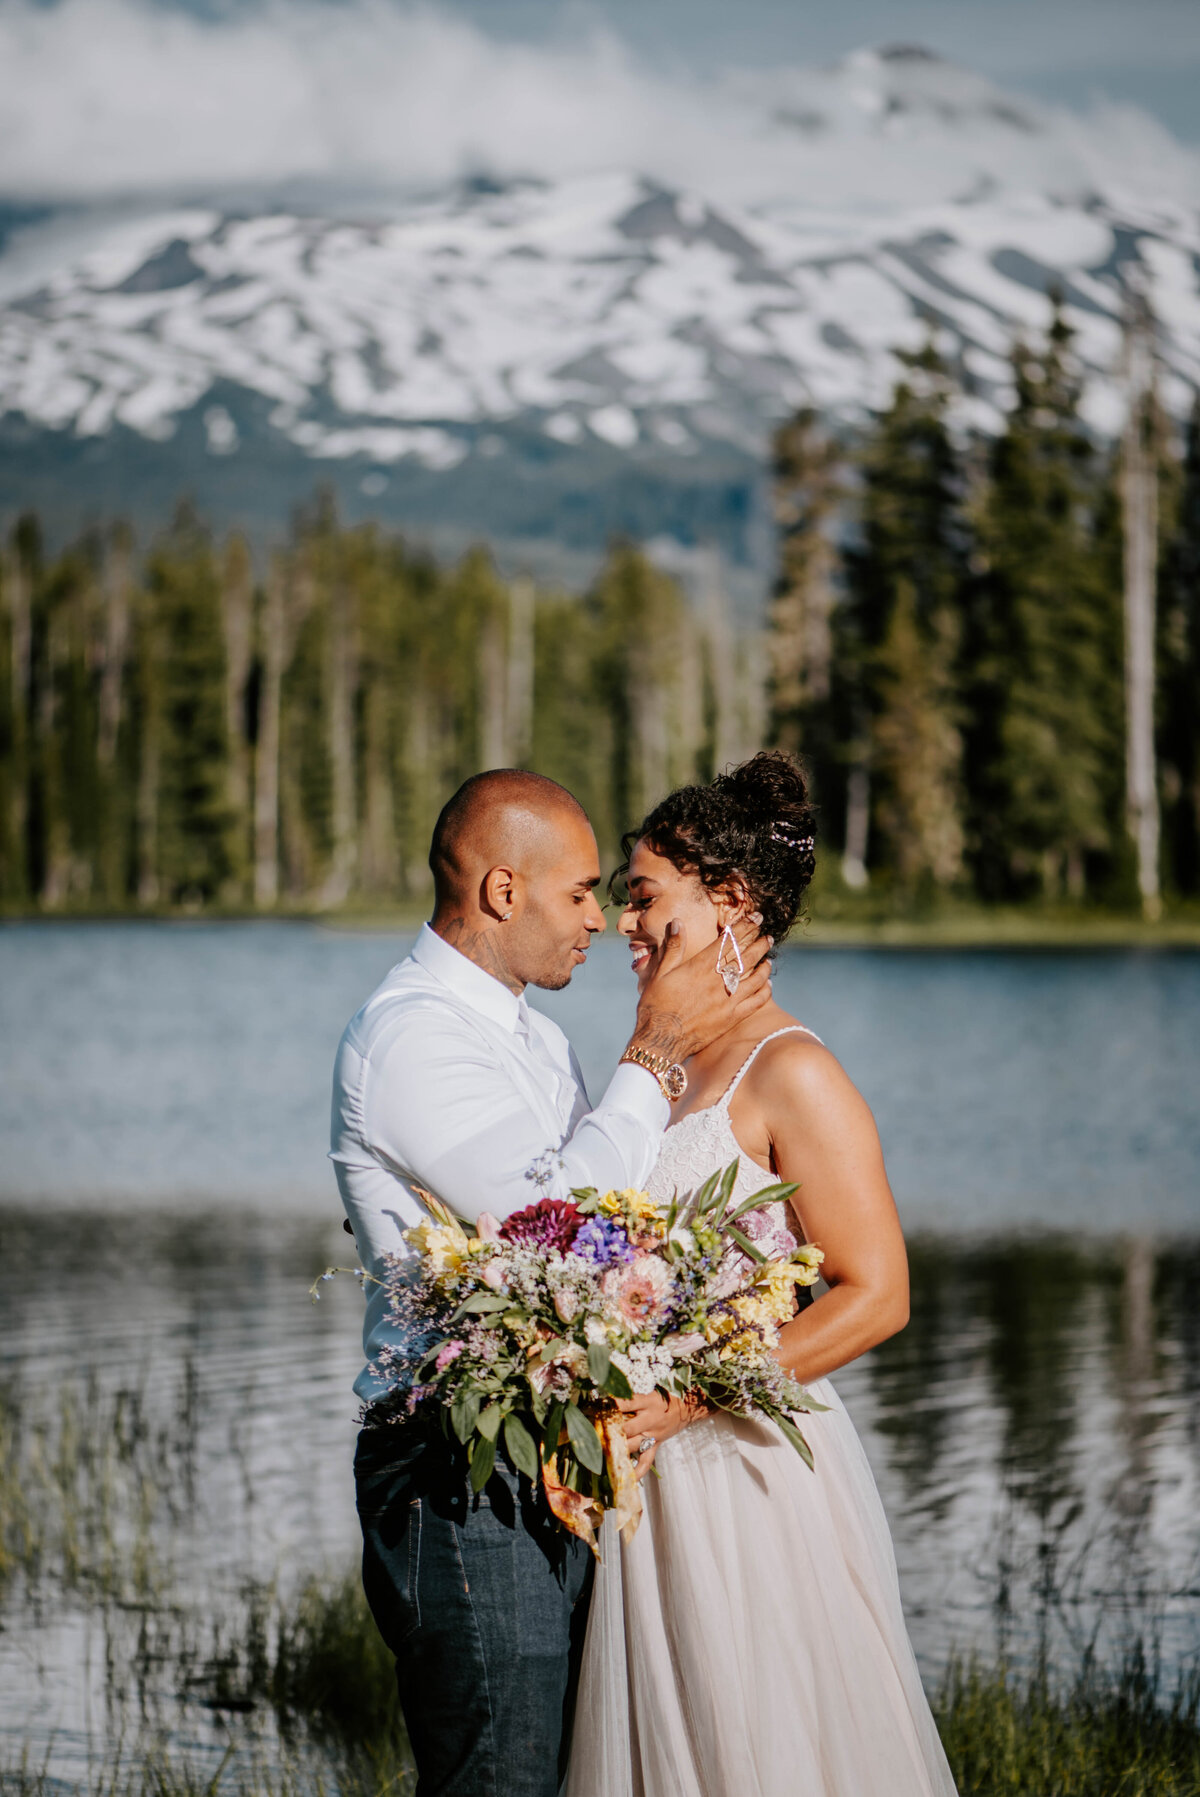 sisters-bend-oregon-summer-wedding-elopement-photographer-dress-scenic-byway-wedding-deewright-observatory-5506